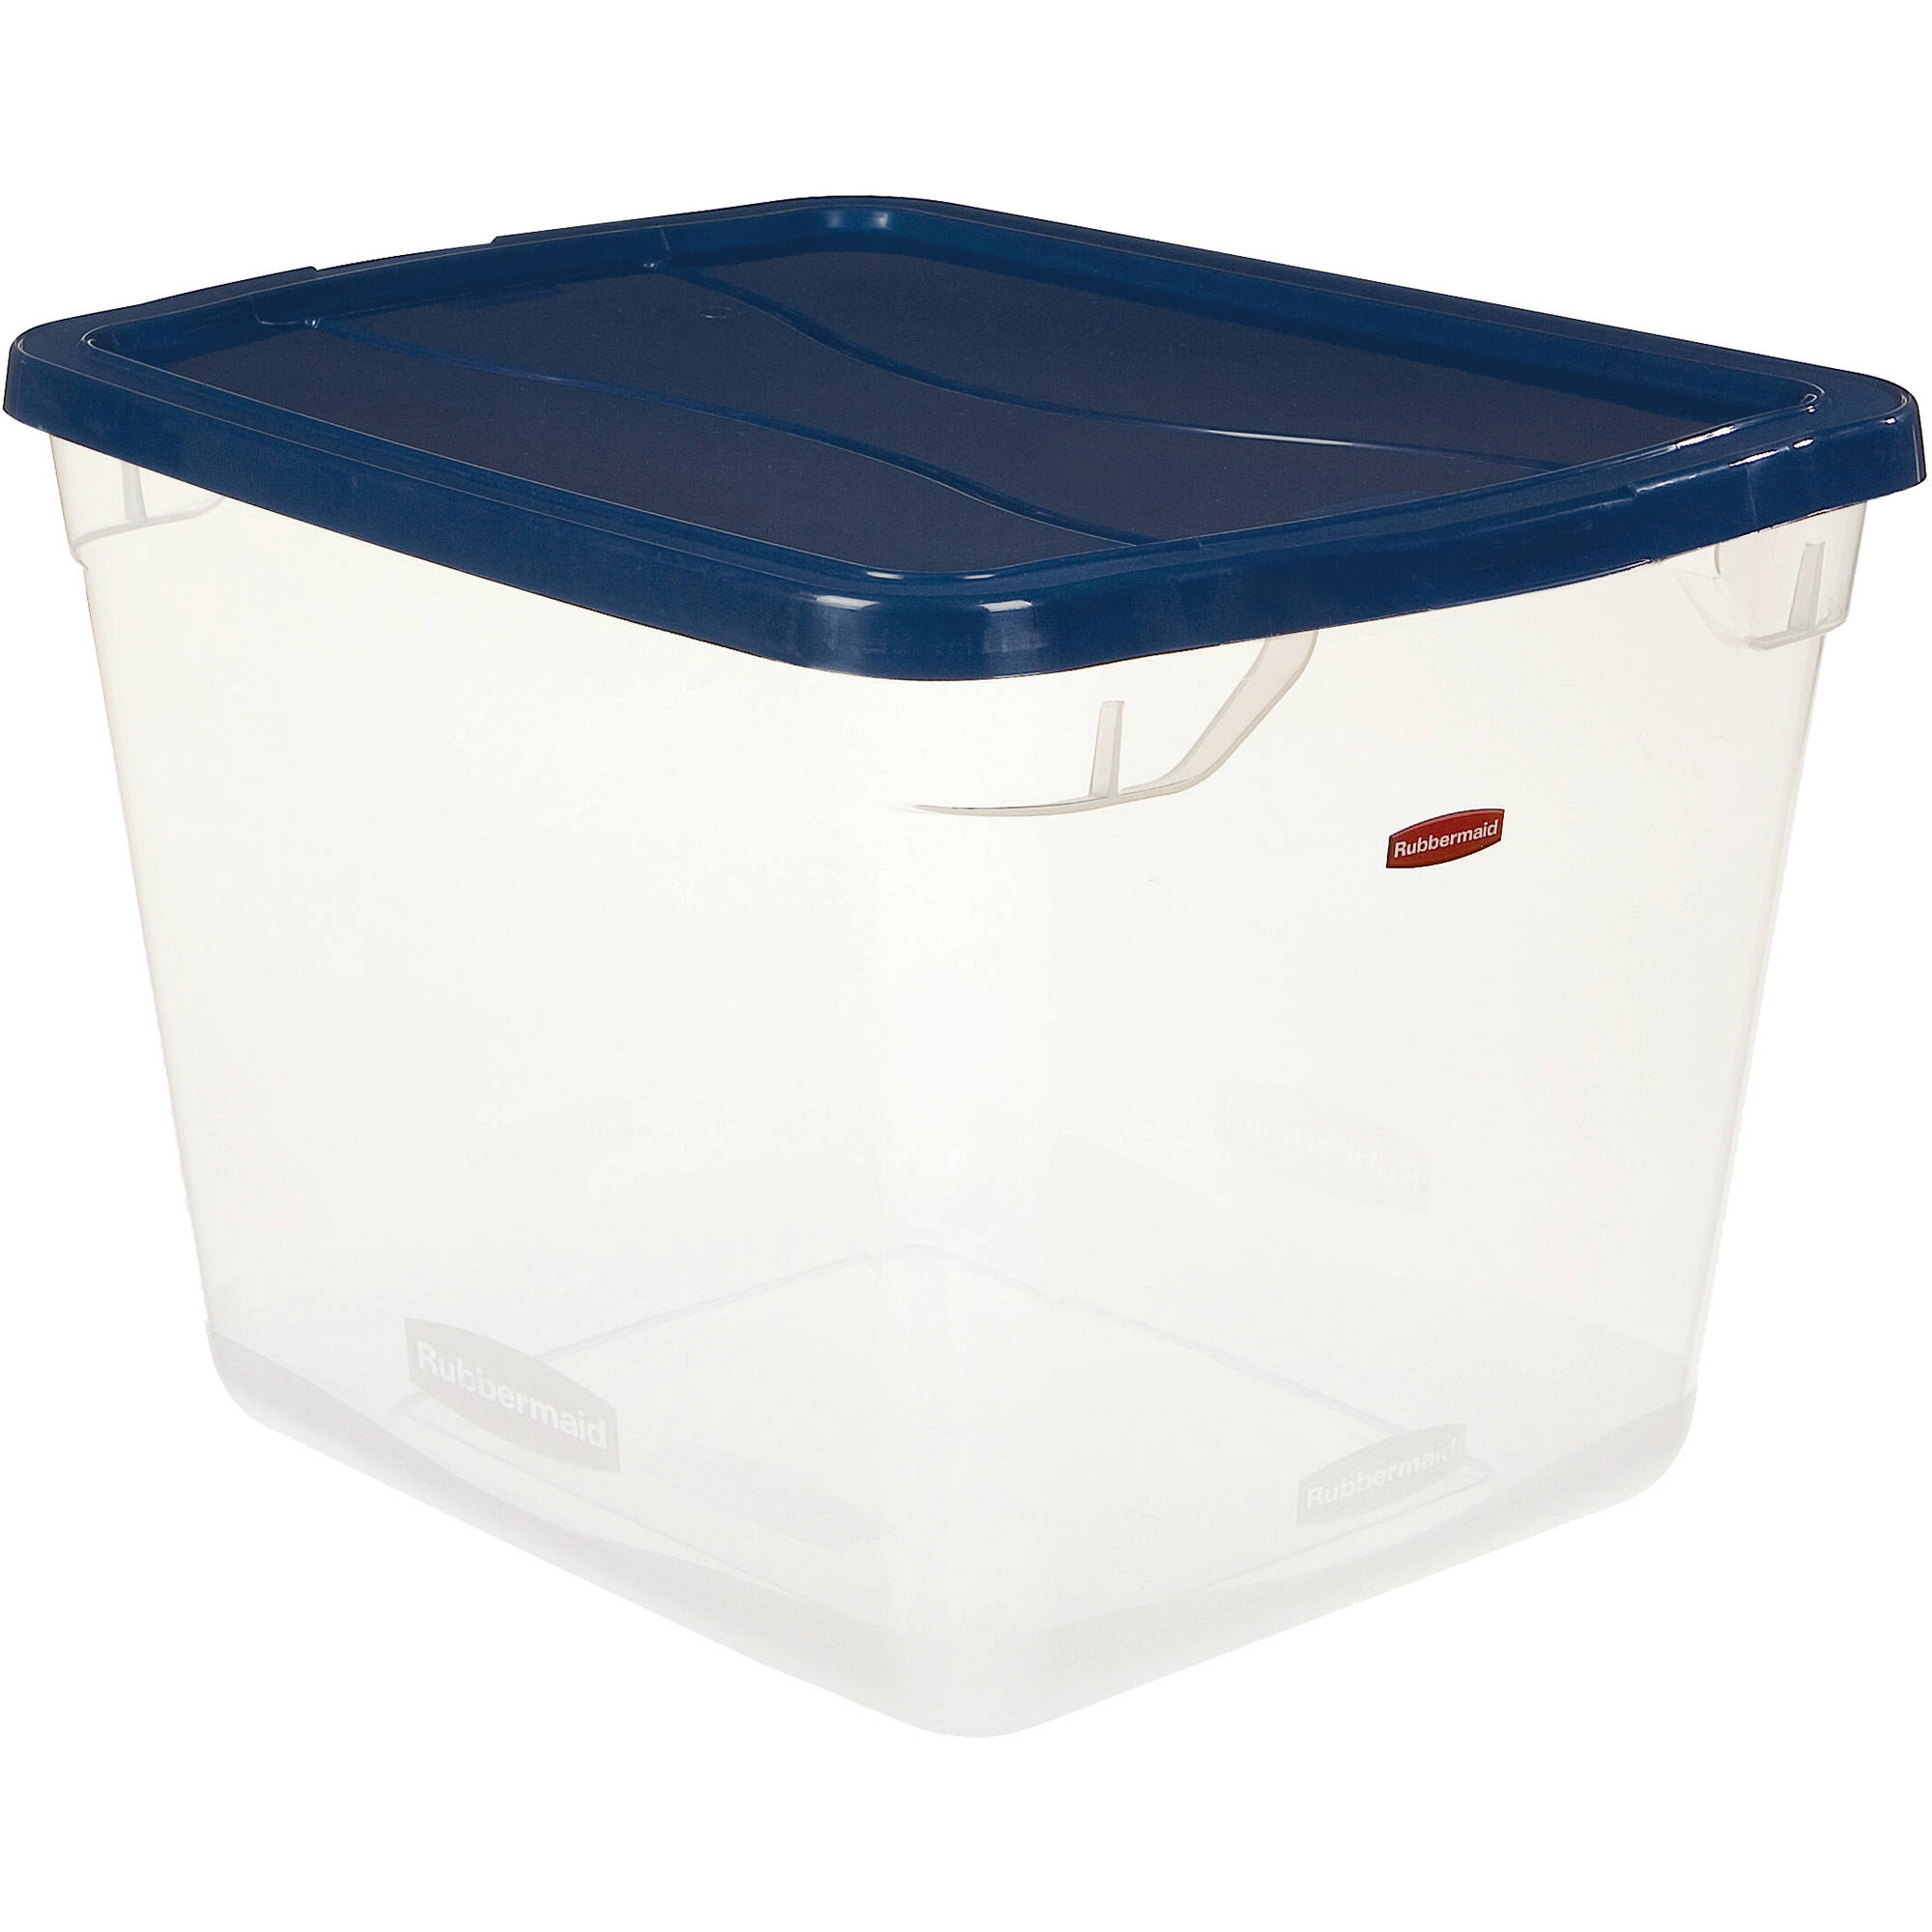 Rubbermaid 7.5-Gallon / 30-Quart Plastic Storage Totes Clear/ Blue (Set of 8) - Walmart.com  sc 1 st  Walmart : walmart storage totes  - Aquiesqueretaro.Com